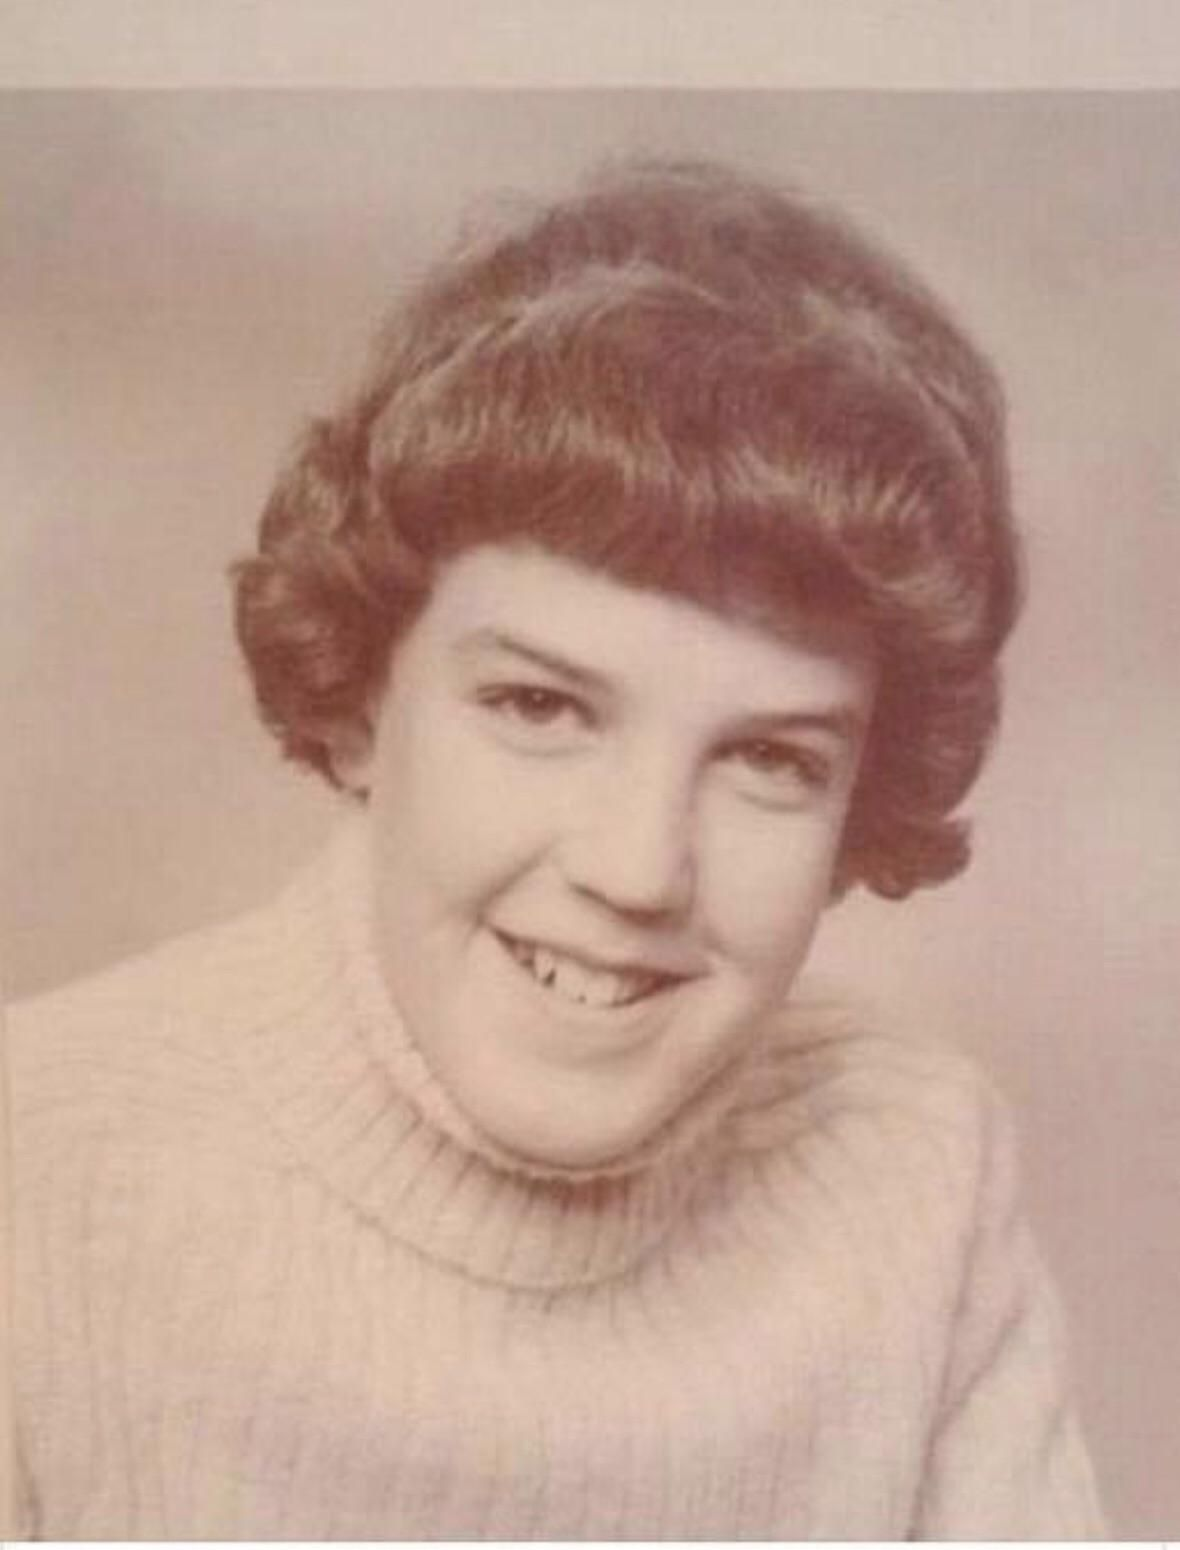 Just a reminder Jeremy Clarkson was once a lesbian